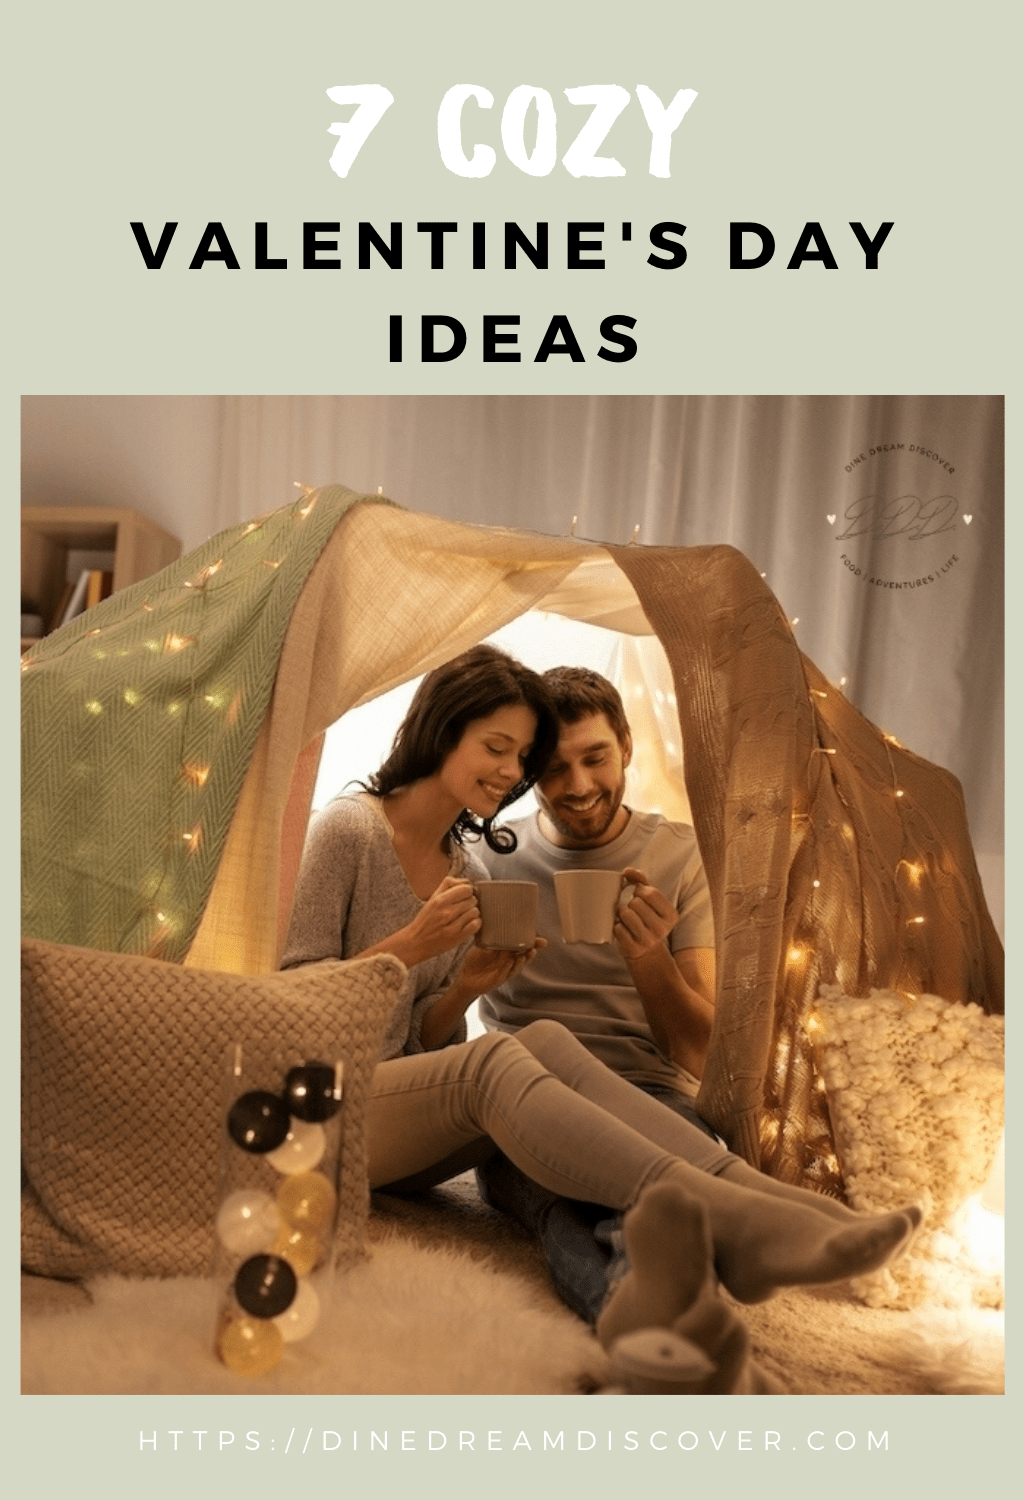 7 COZY VALENTINE'S DAY IDEAS